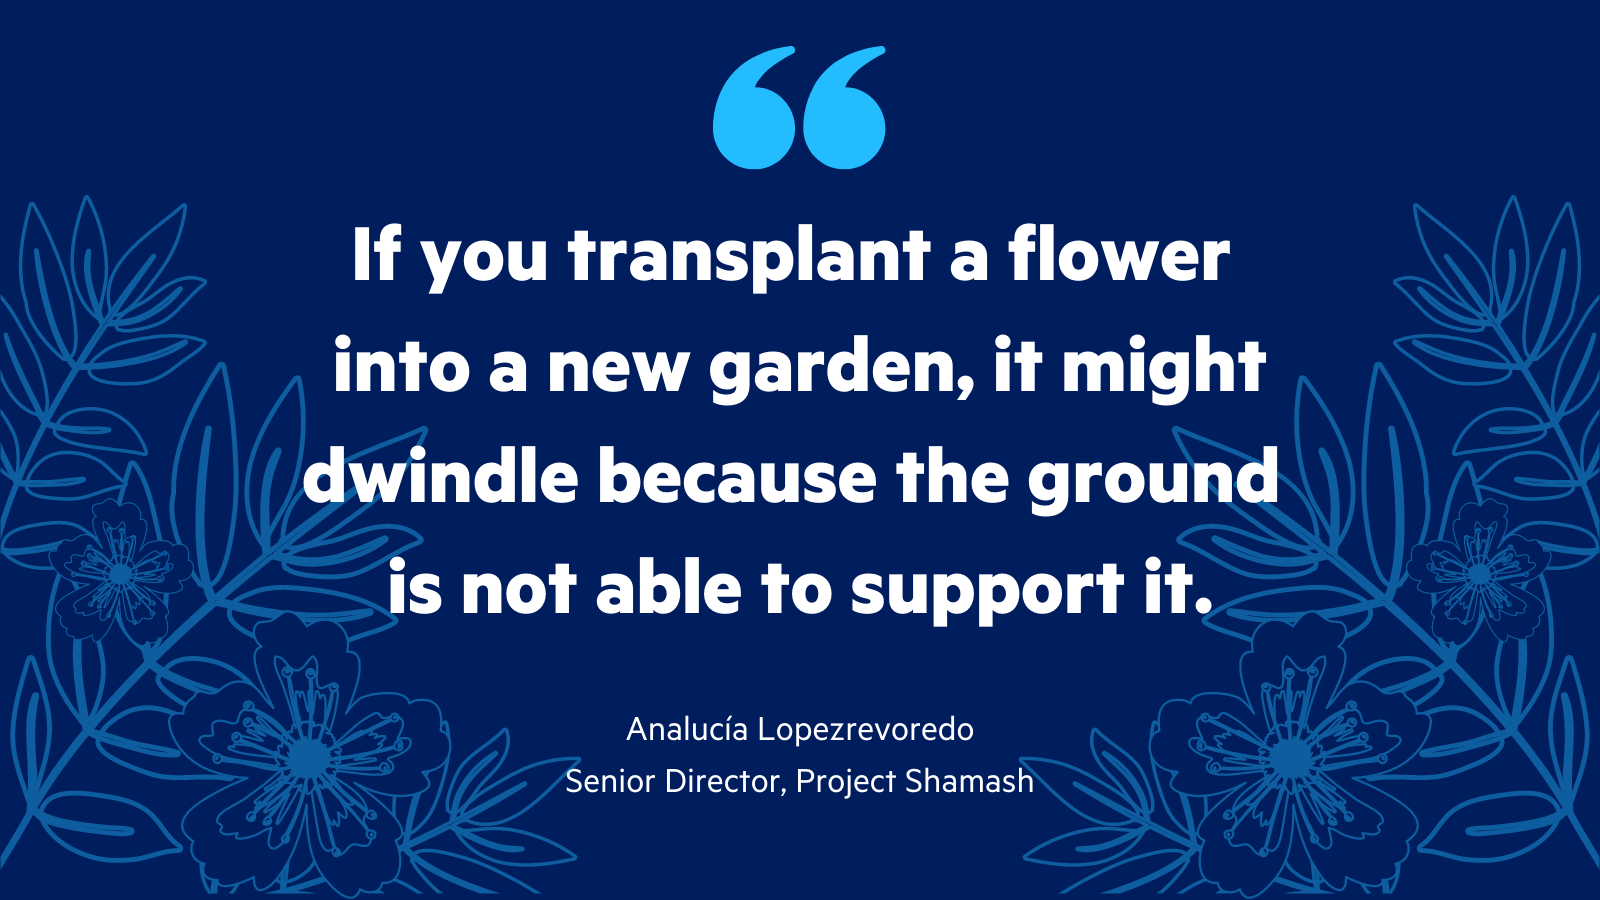 Quote from Analucía Lopezrevoredo, Project Shamash Senior Director: if you transplant a flower into a new garden, it might dwindle because the ground is not able to support it.